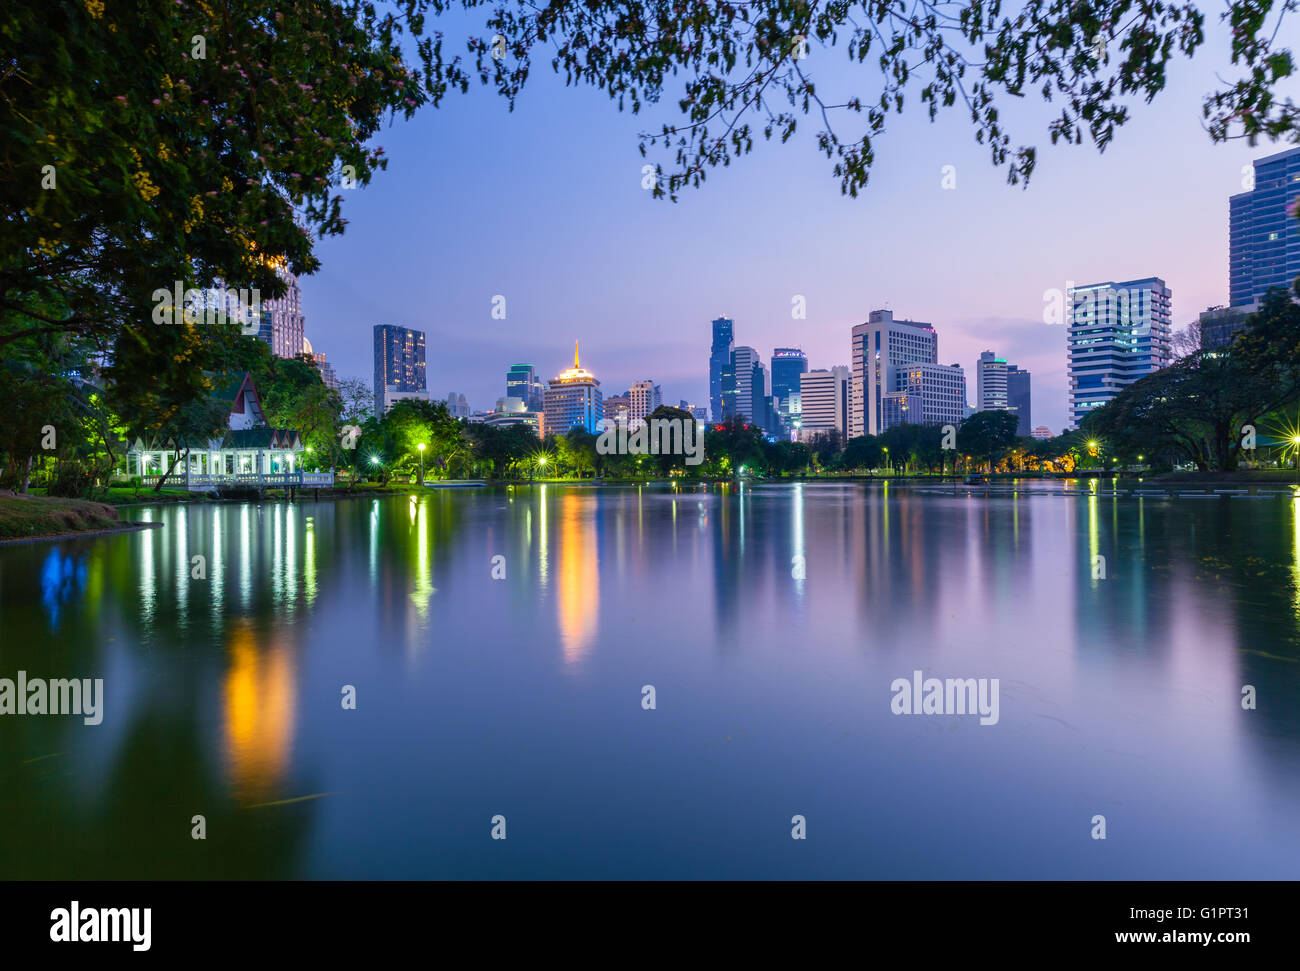 Dusk view of the city skyline in Lumpini public park, Bangkok, Thailand - Stock Image